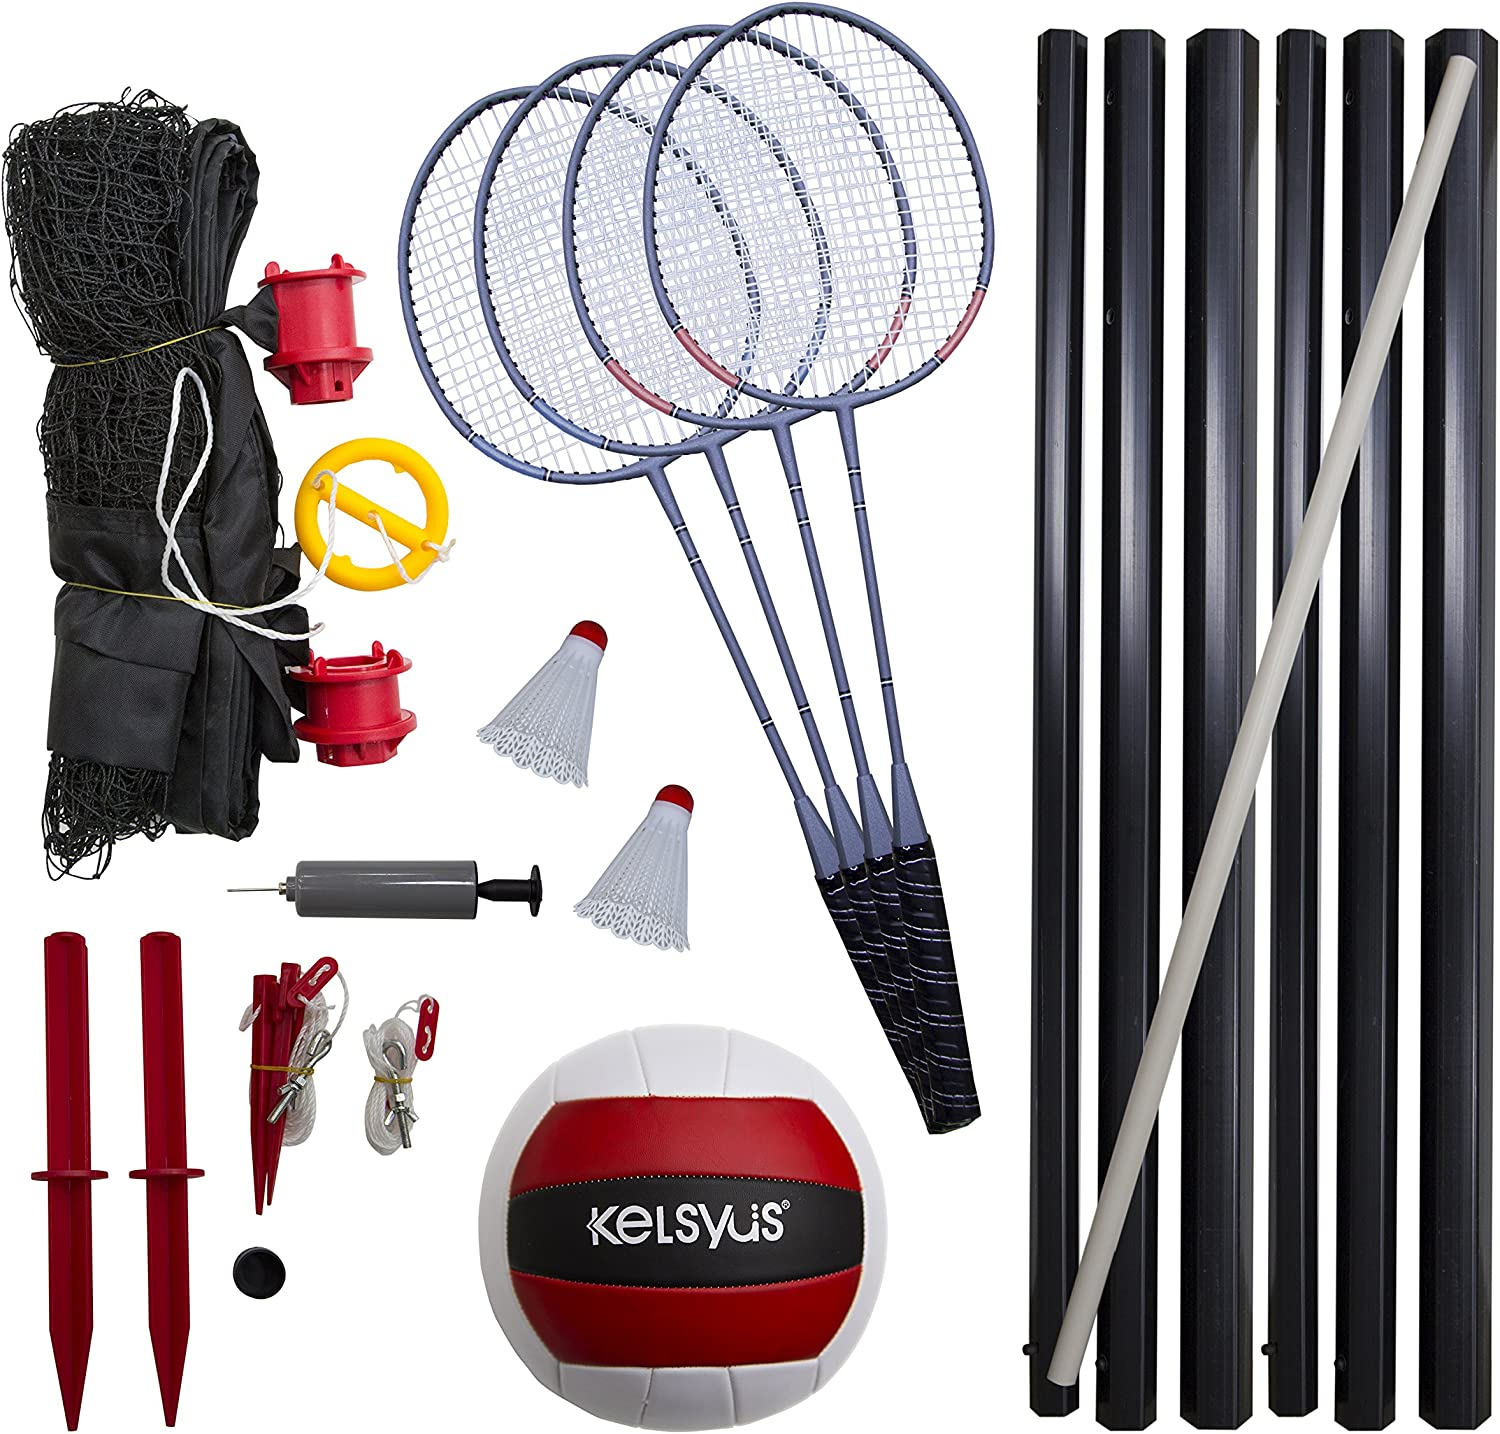 Kelsyus Premium Badminton and Volleyball Combo: Toys & Games